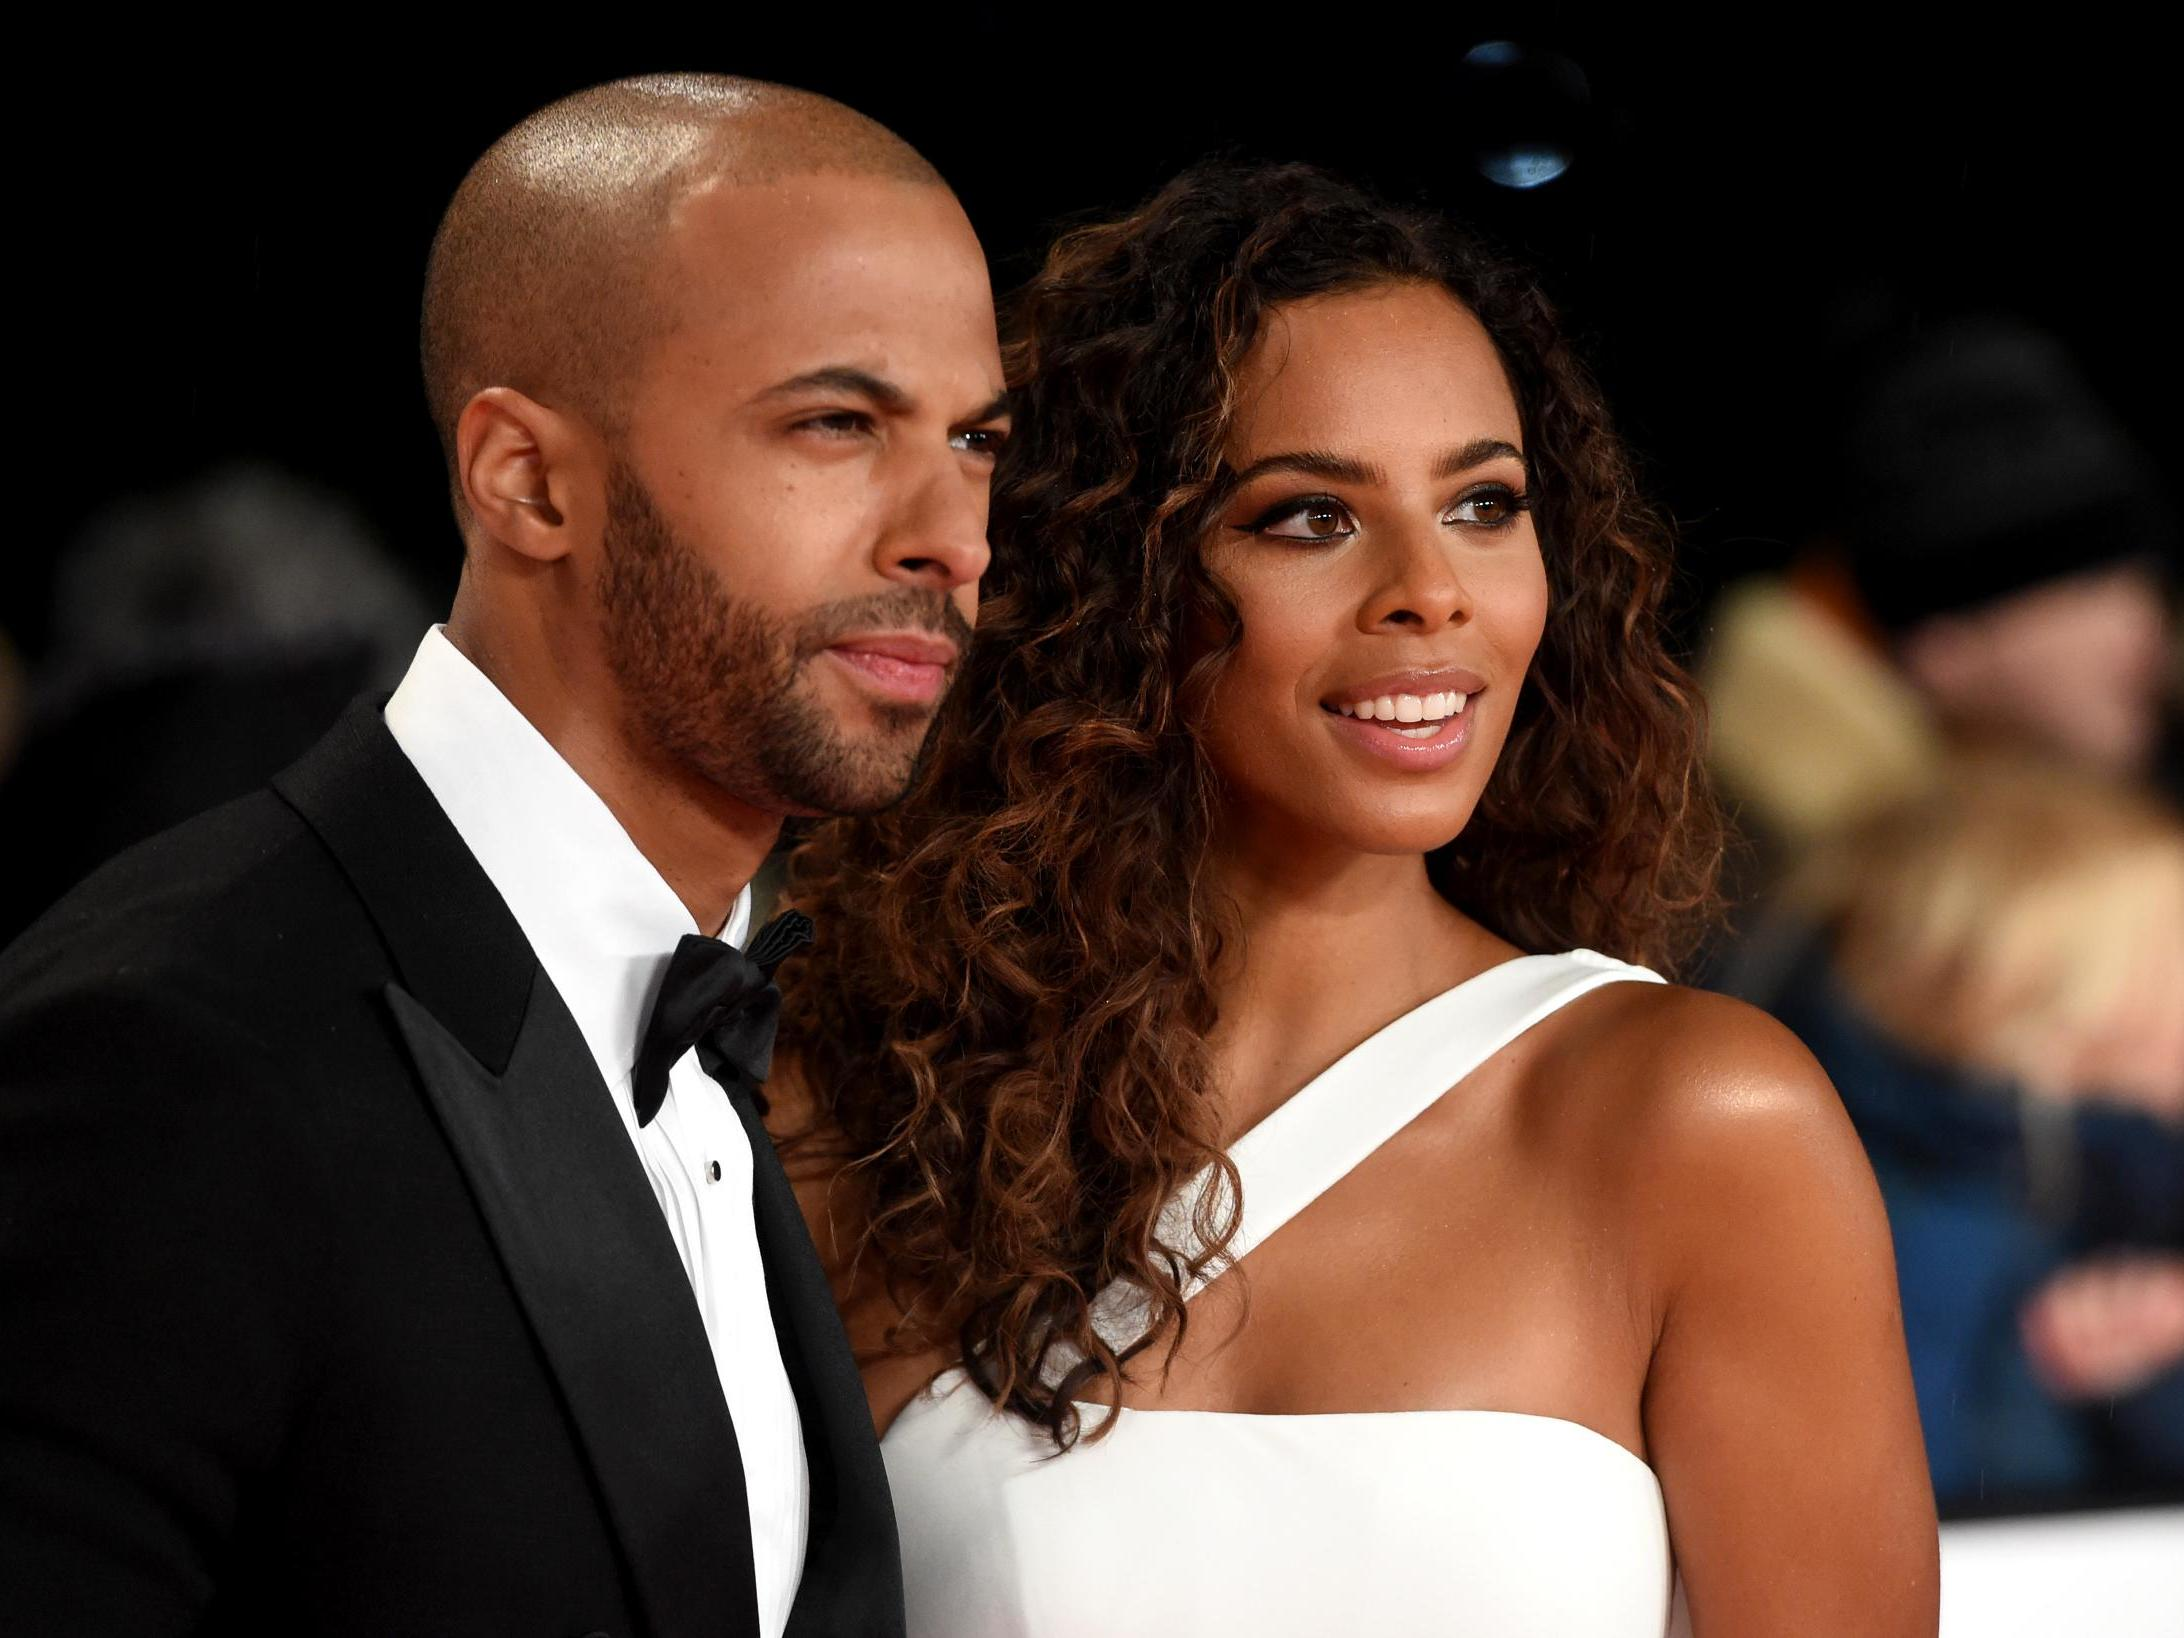 Rochelle Humes Announces She Is Pregnant With Third Child The Independent The Independent